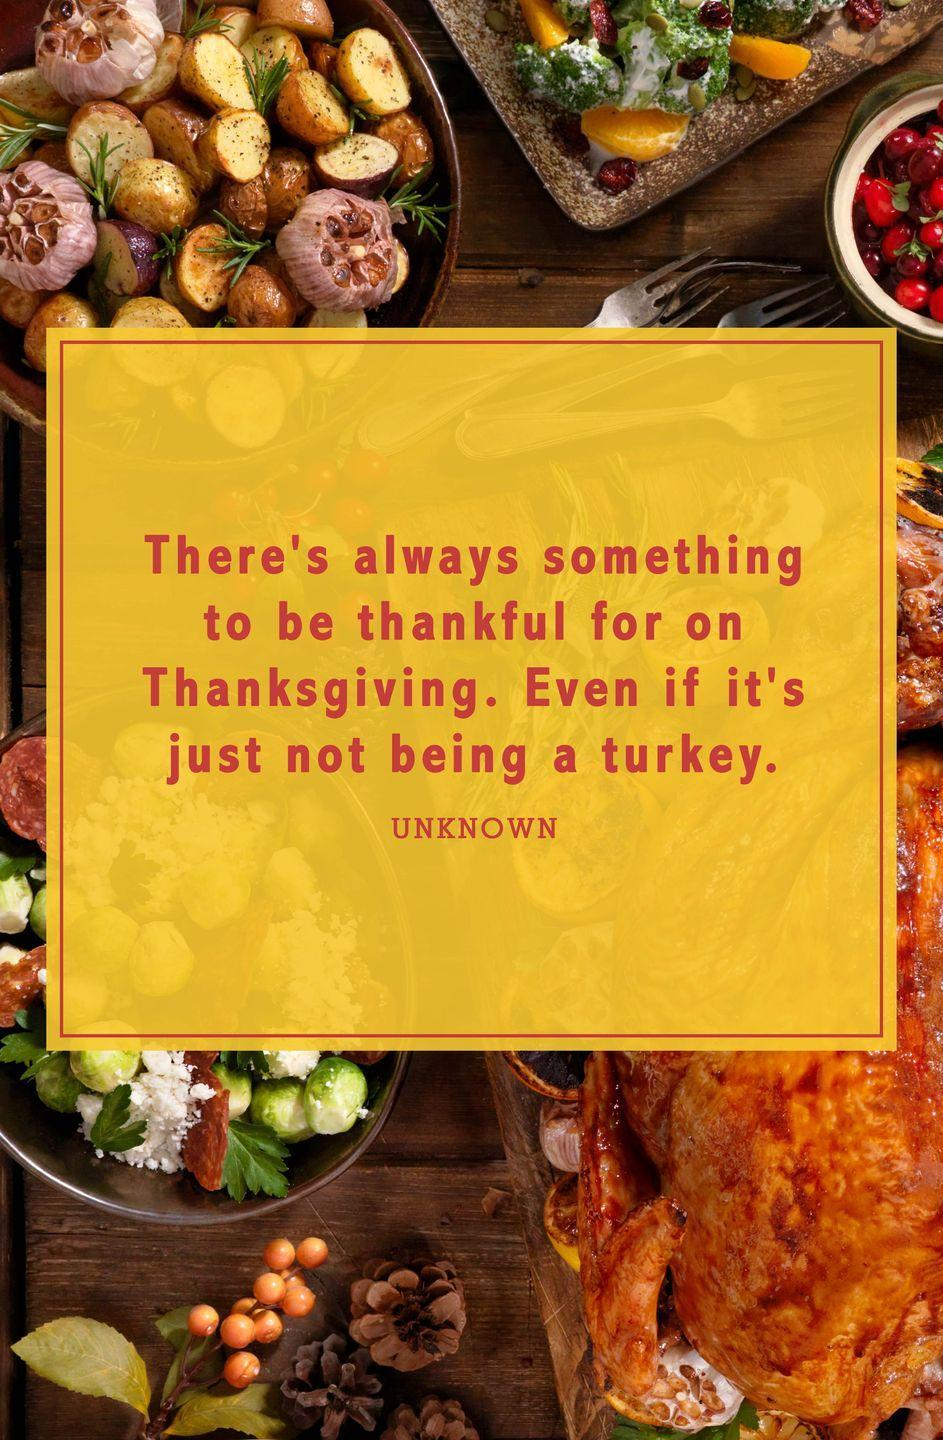 "<p>""There's always something to be thankful for on Thanksgiving. Even if it's just not being a turkey.""</p>"